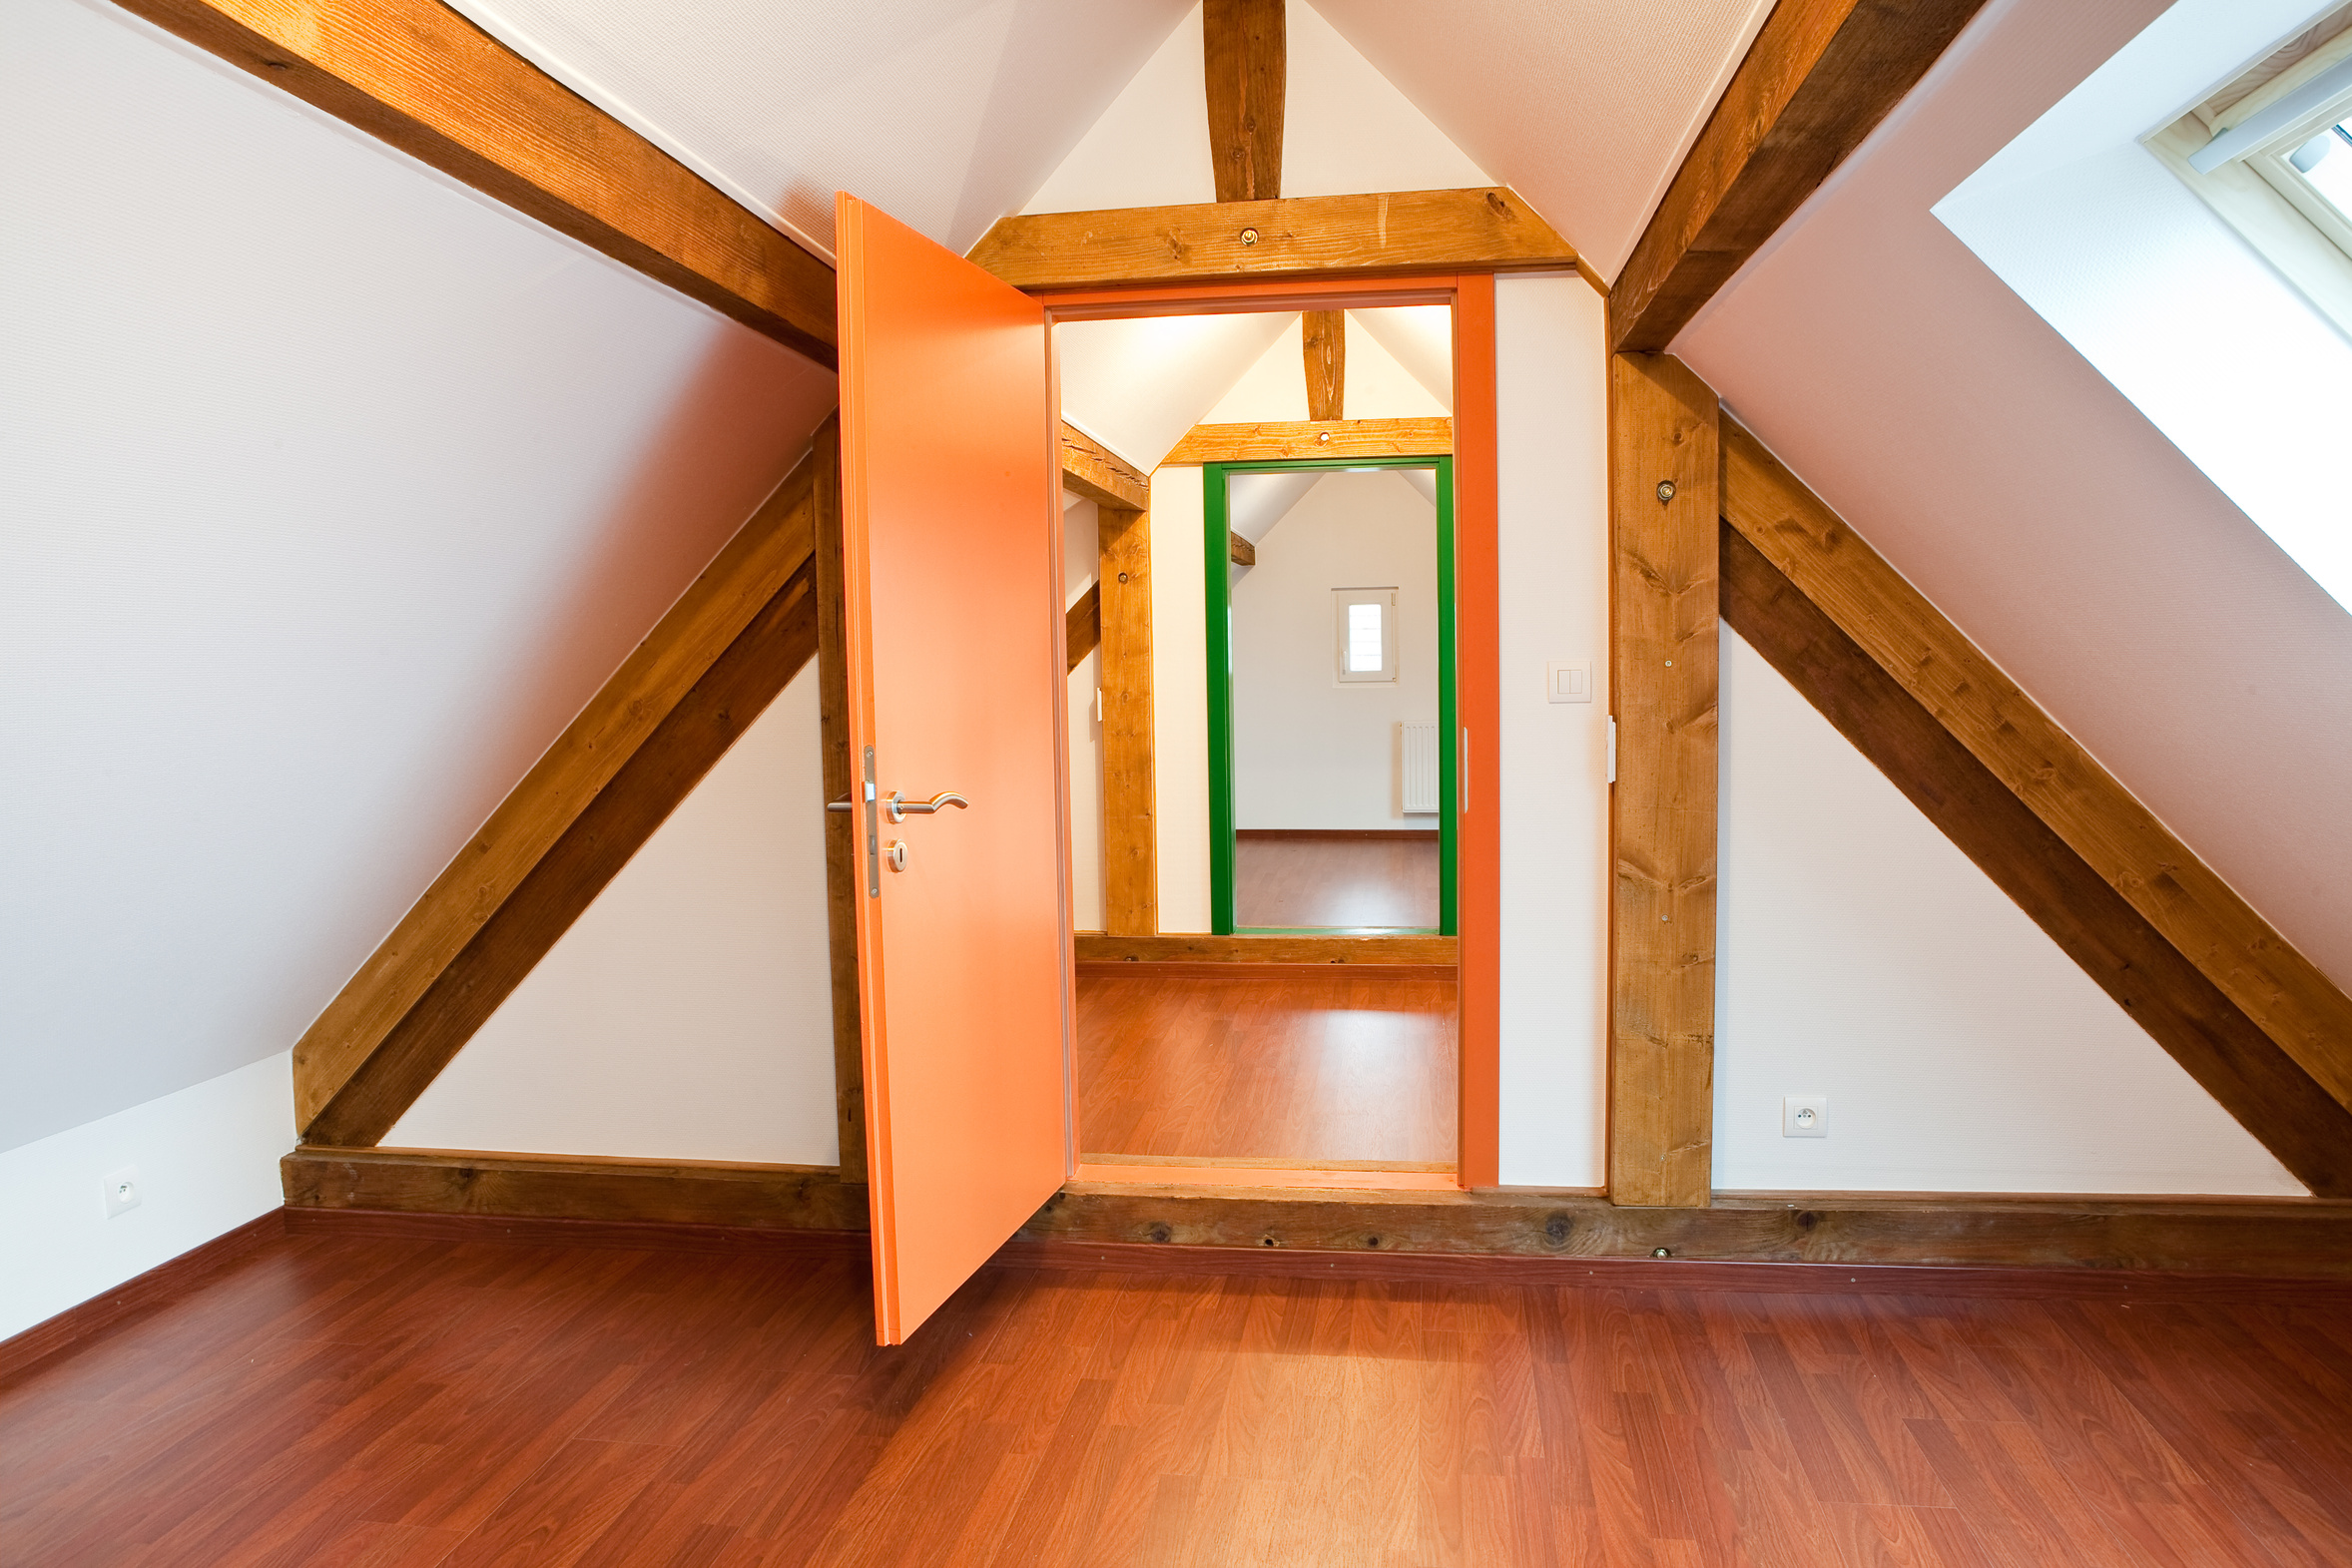 Devis am nagement de combles d une maison 3 devis gratuits for Amenagement petit comble